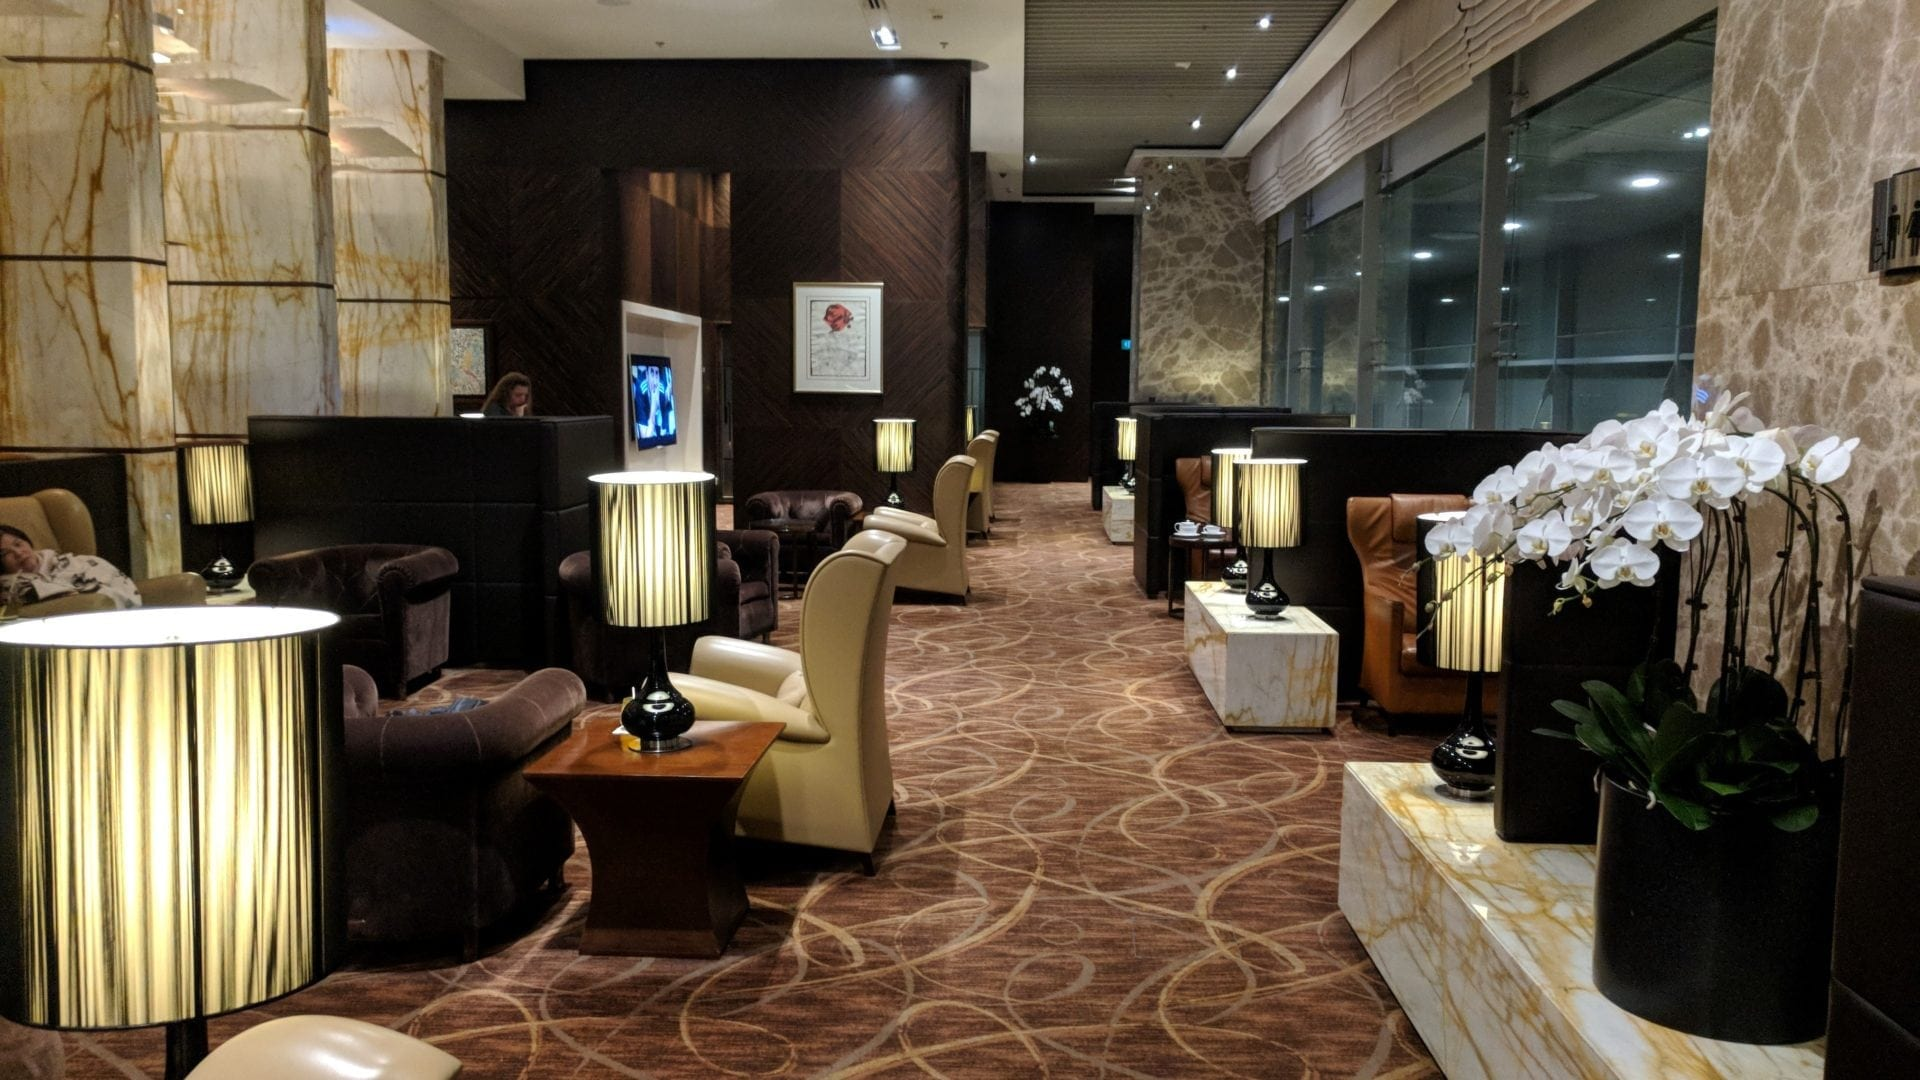 Singapore Airlines Private Room (2)